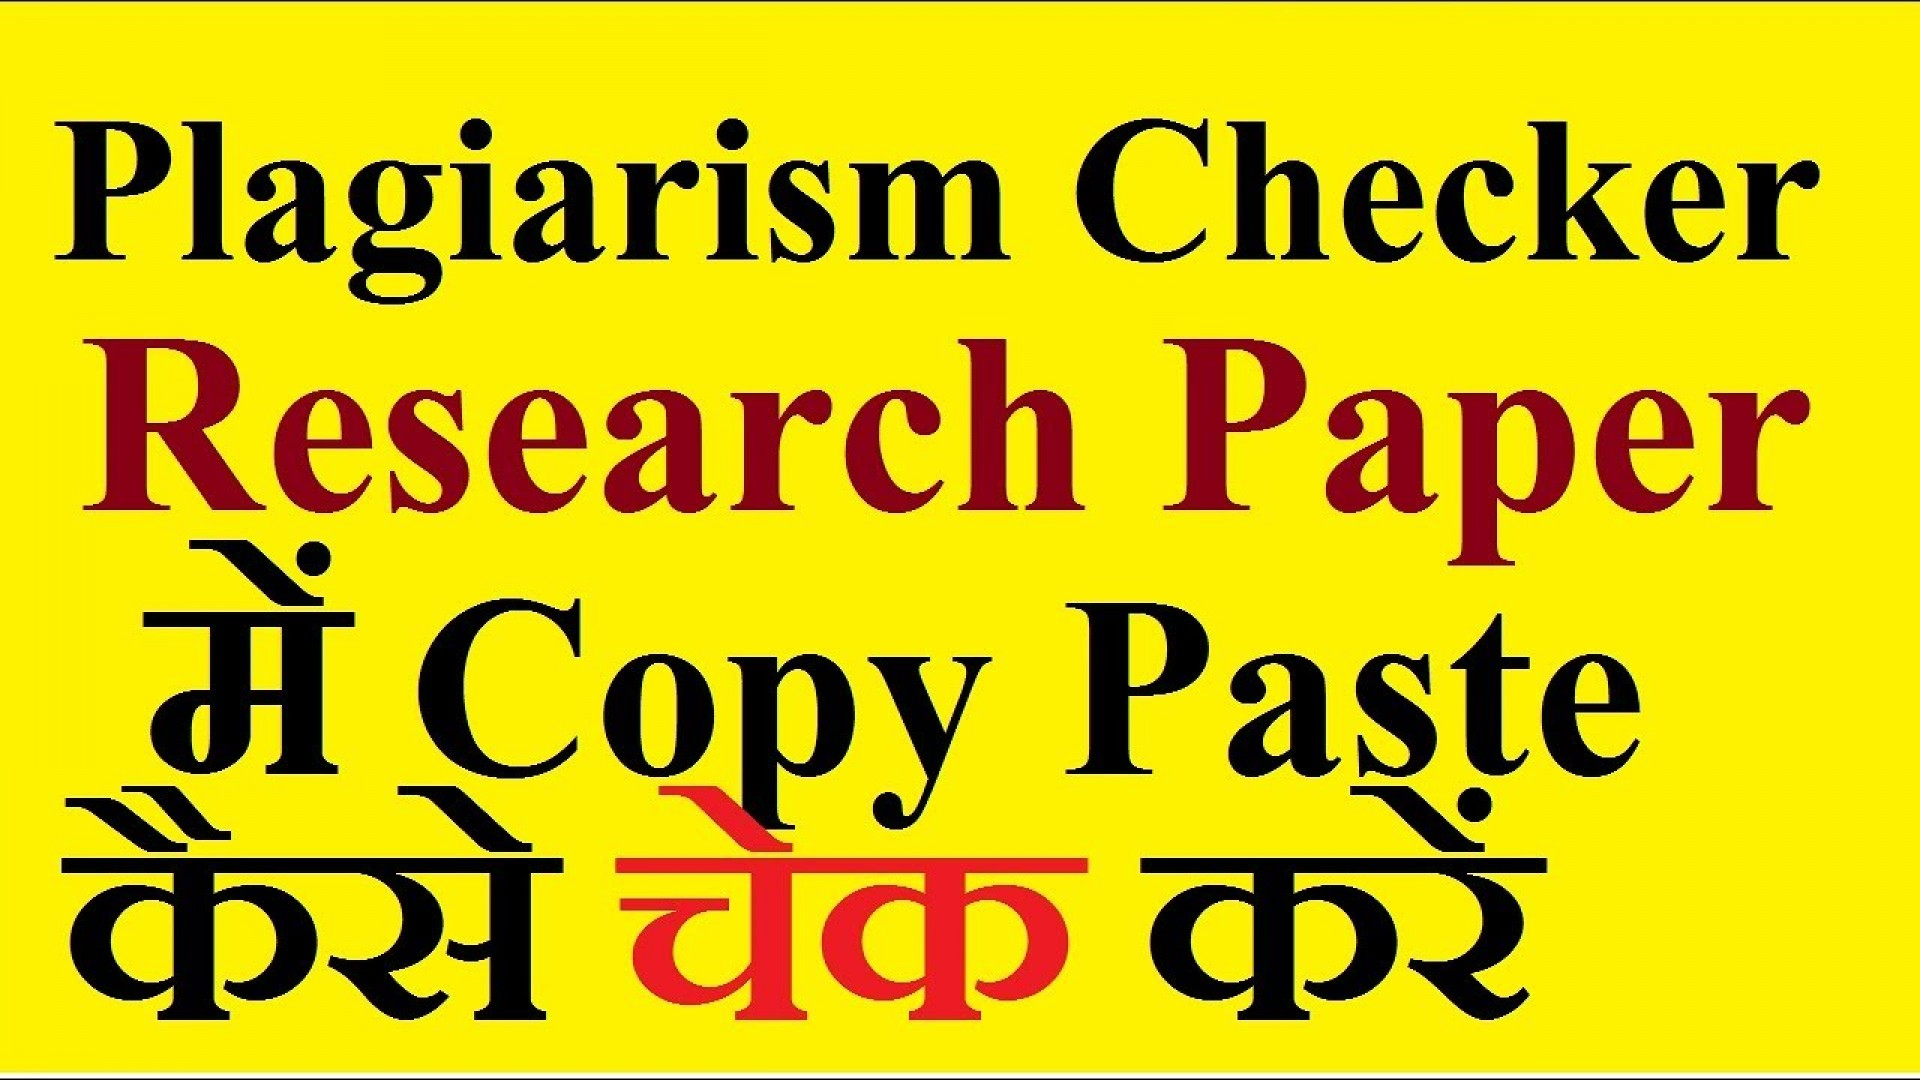 008 Free Research Paper Plagiarism Checker Unusual 1920